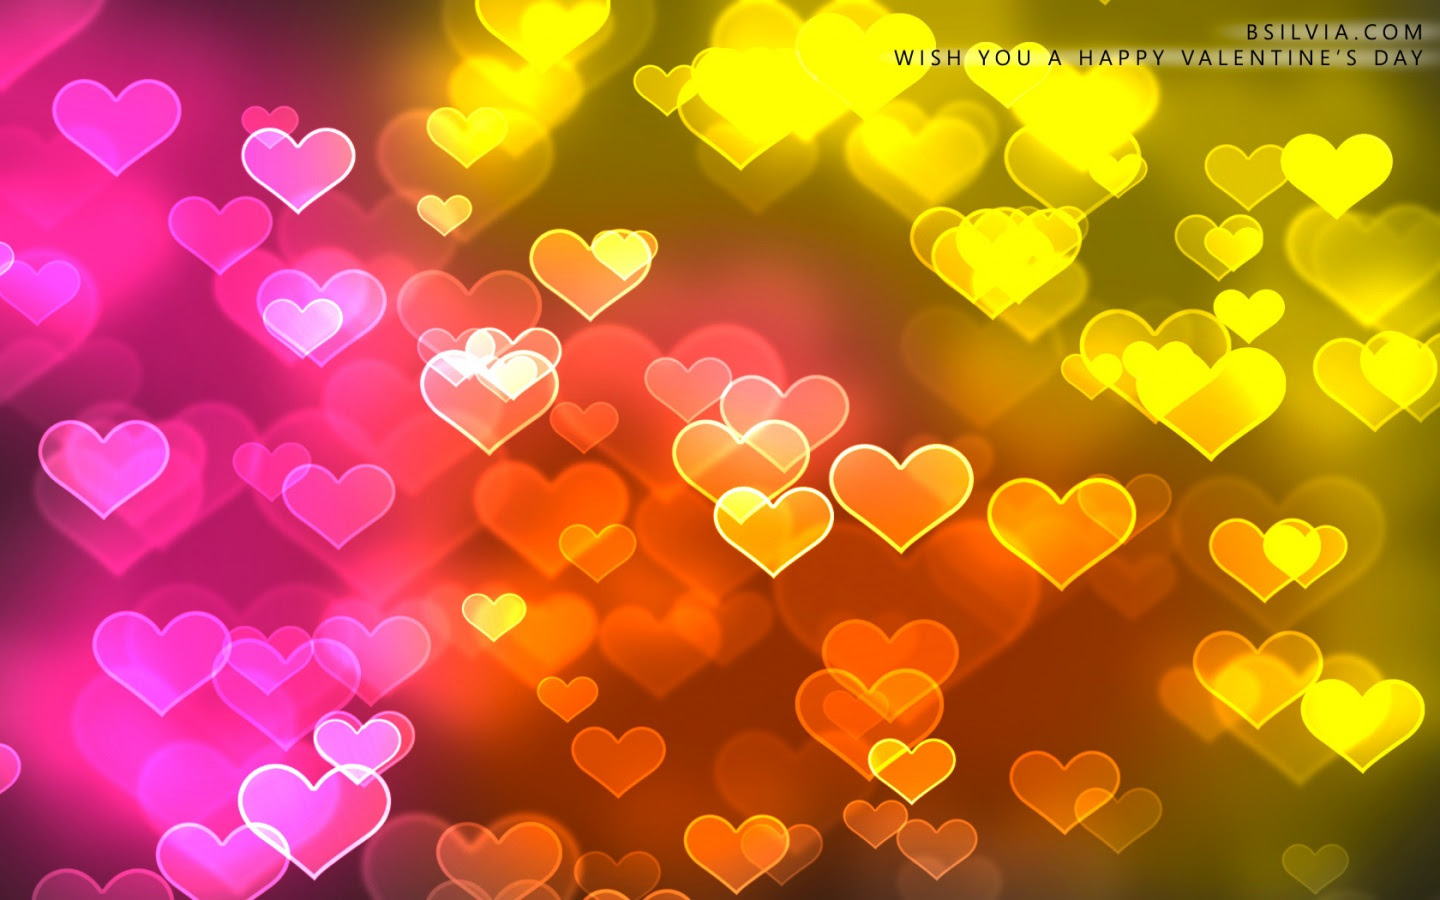 Valentine Images Free Download 20805 Hd Wallpapers Background  HDesktops.com